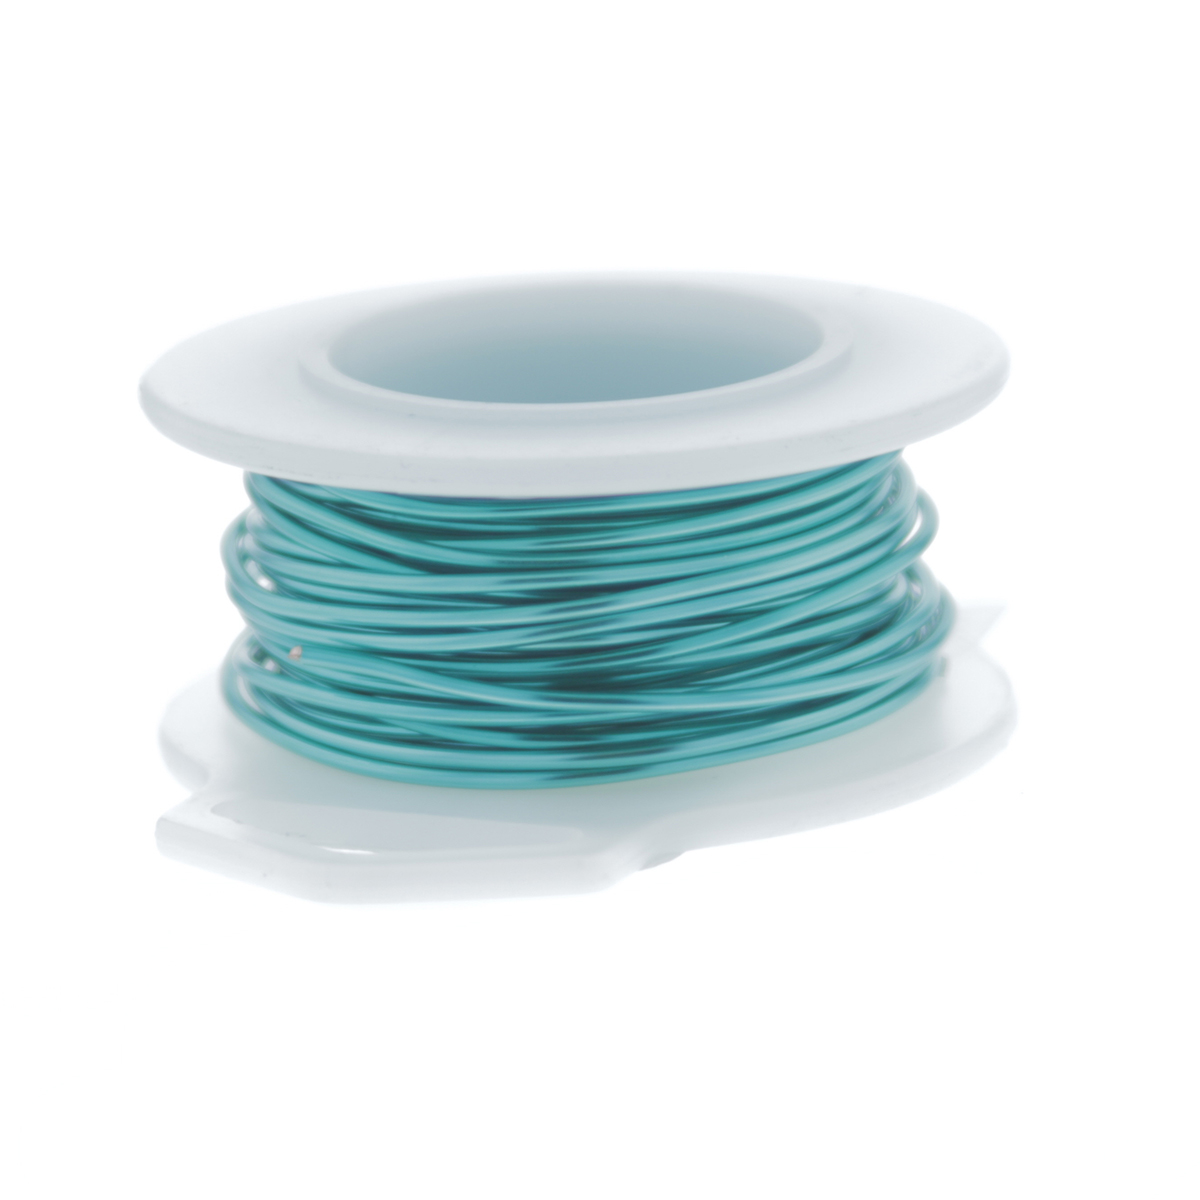 22 Gauge Round Silver Plated Pacific Blue Copper Craft Wire - 24 ft